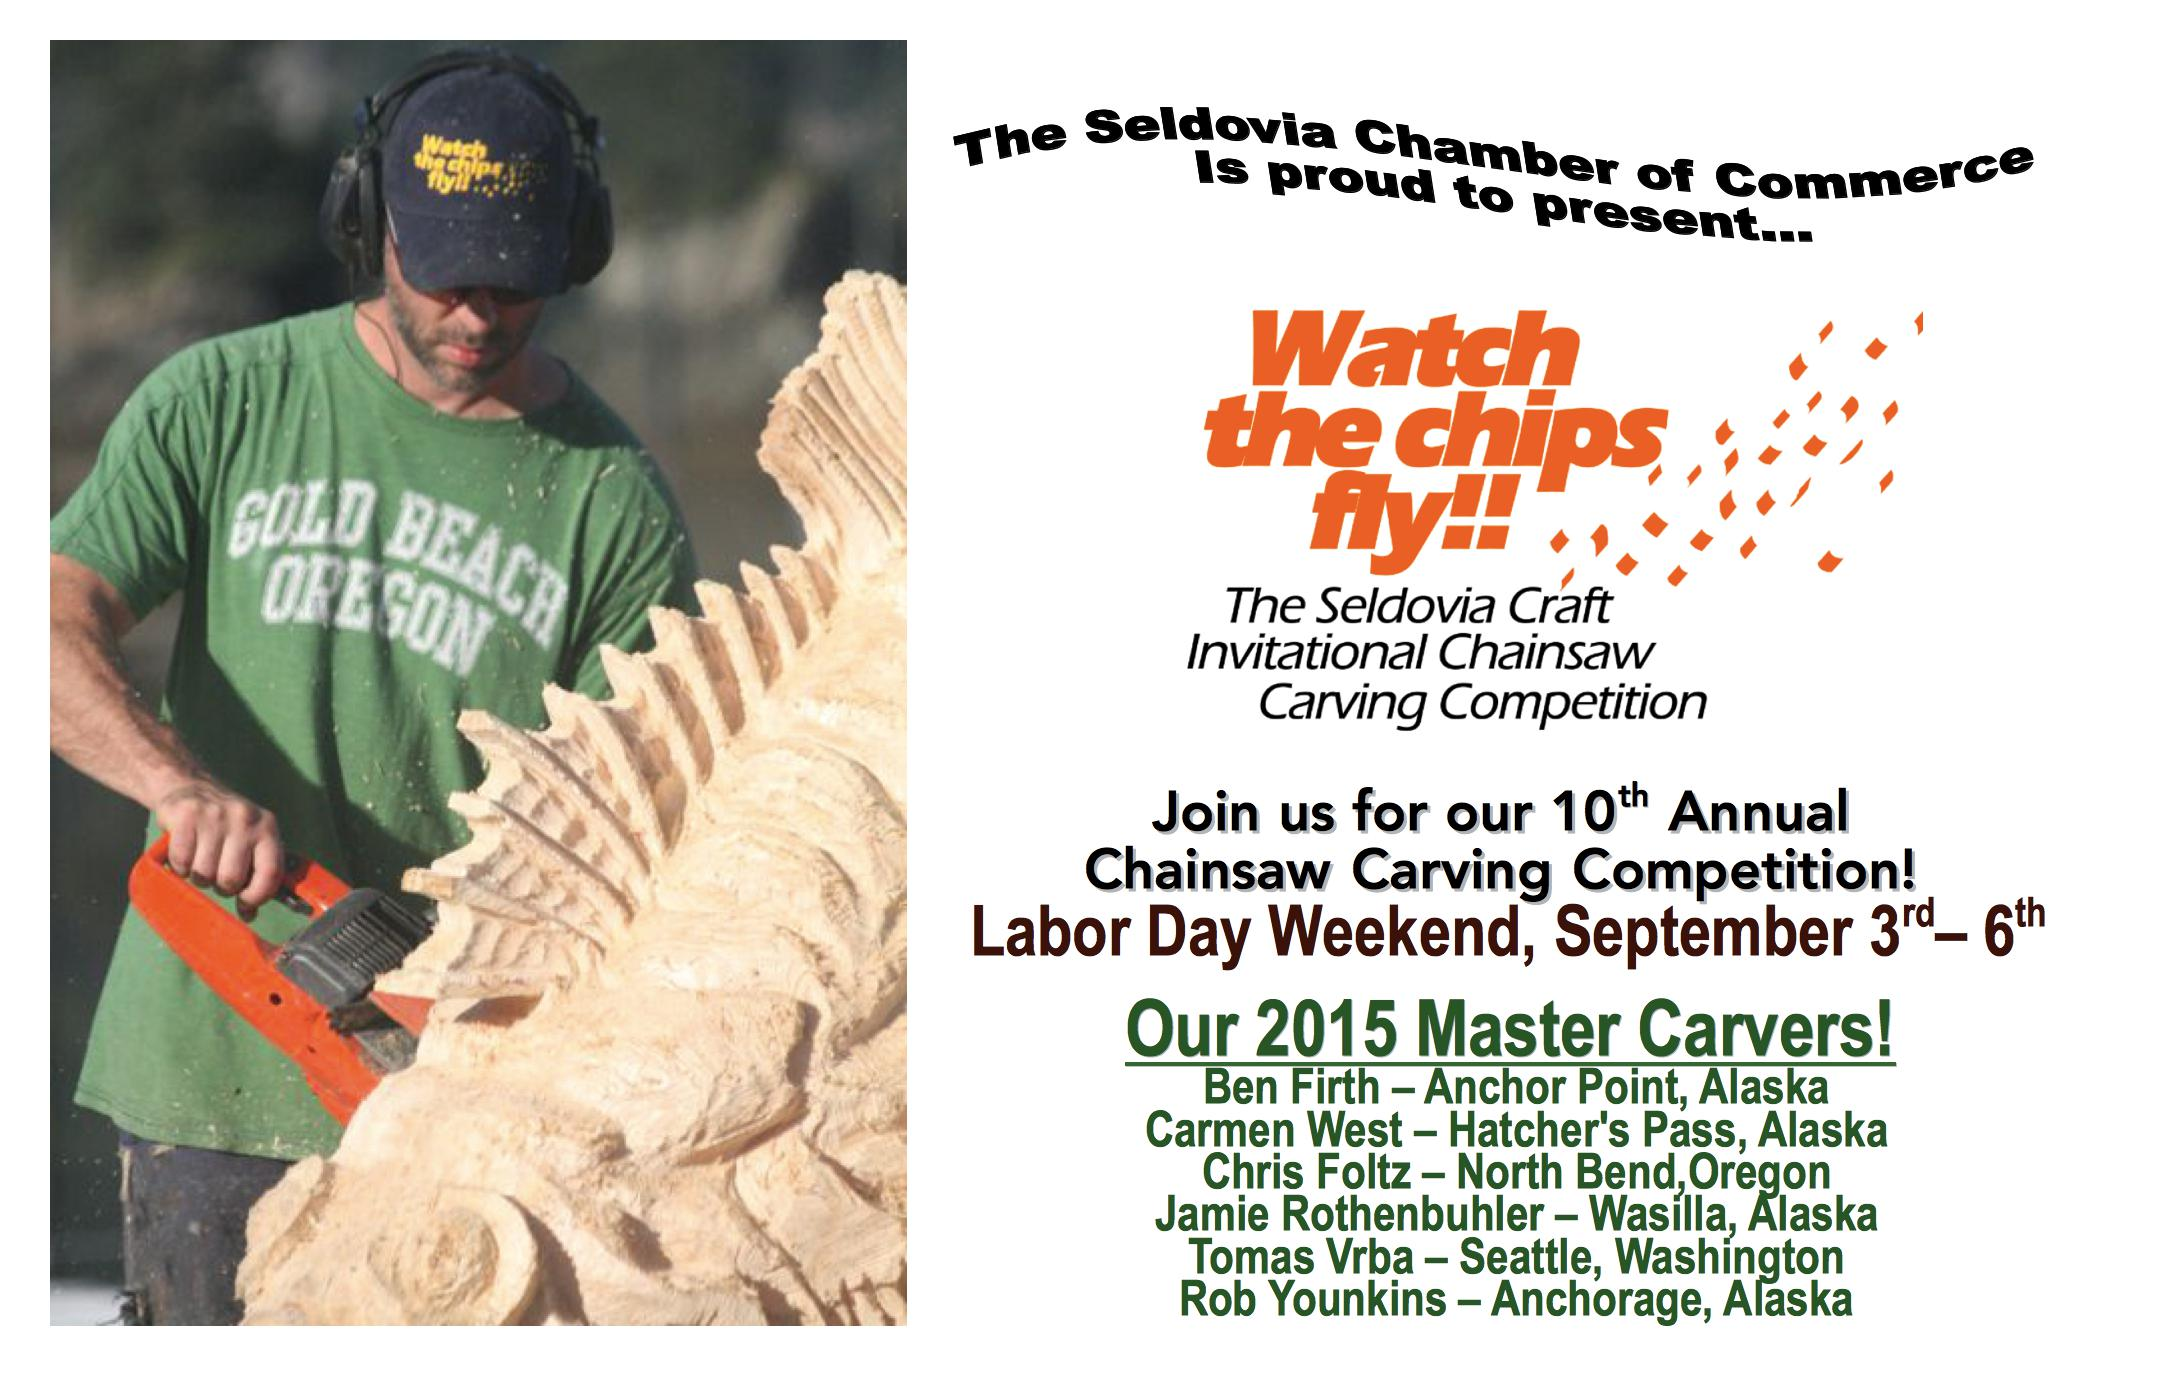 Chainsaw carving competition seldovia